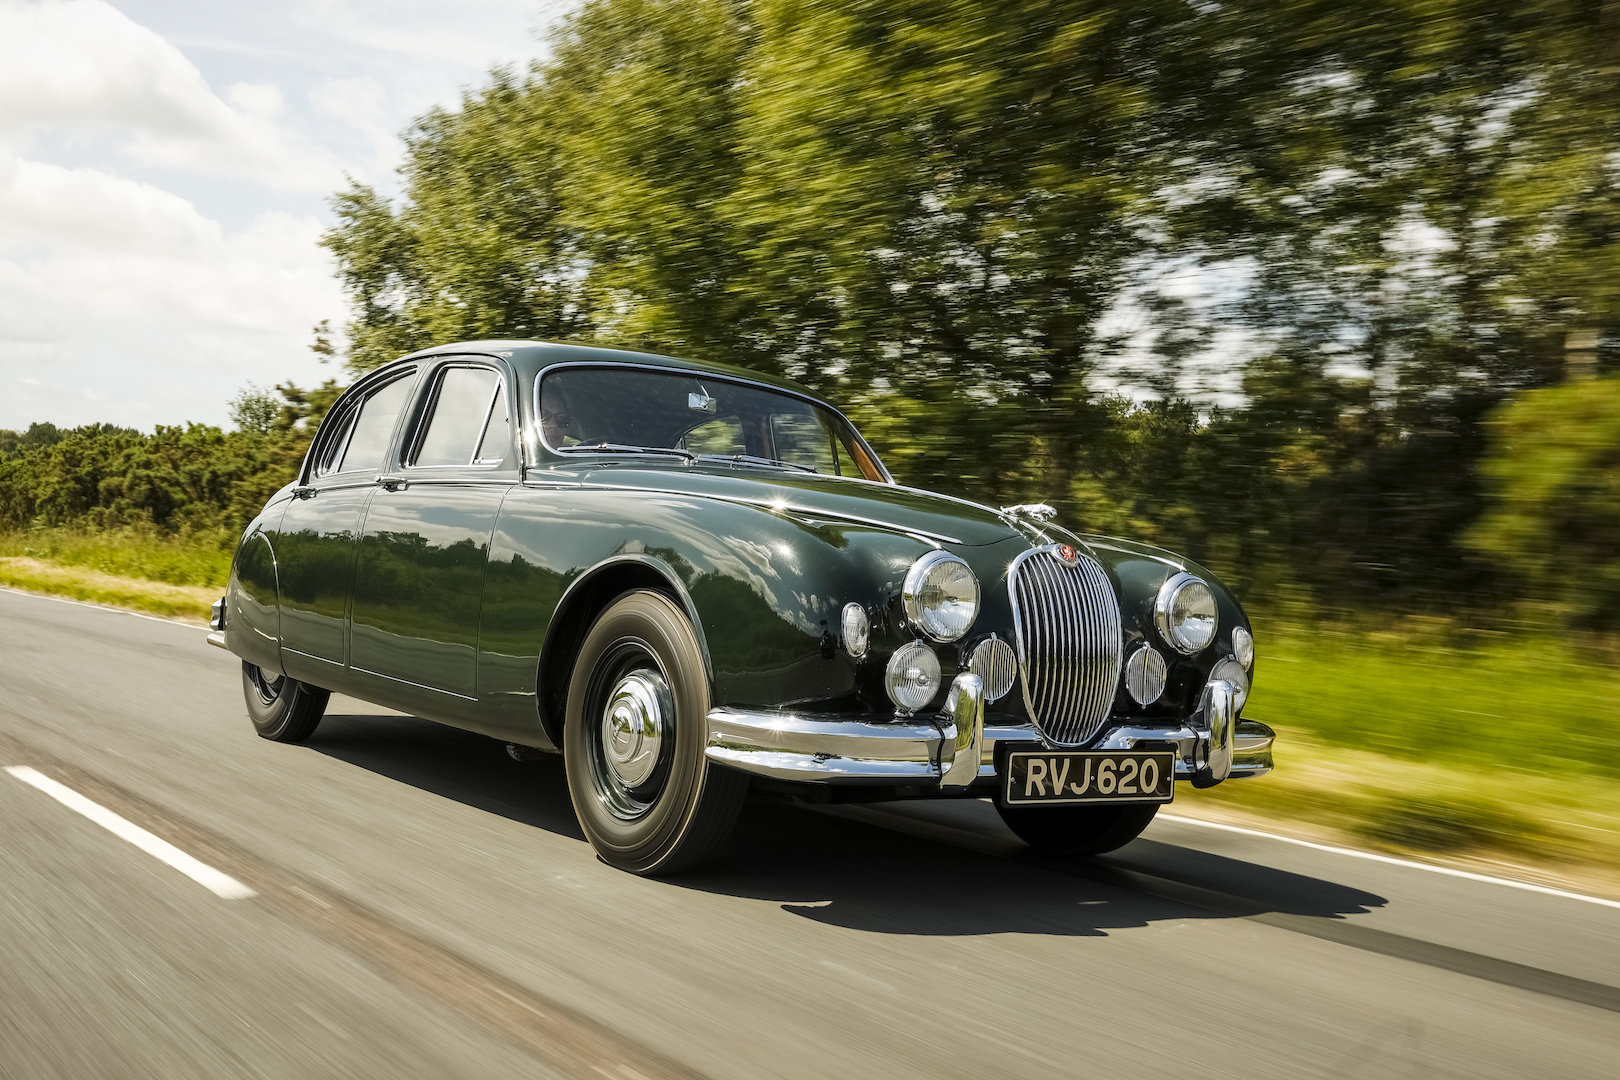 1958 Jaguar MK1 Exceptionally original with 26,553 miles from new For Sale (picture 1 of 6)